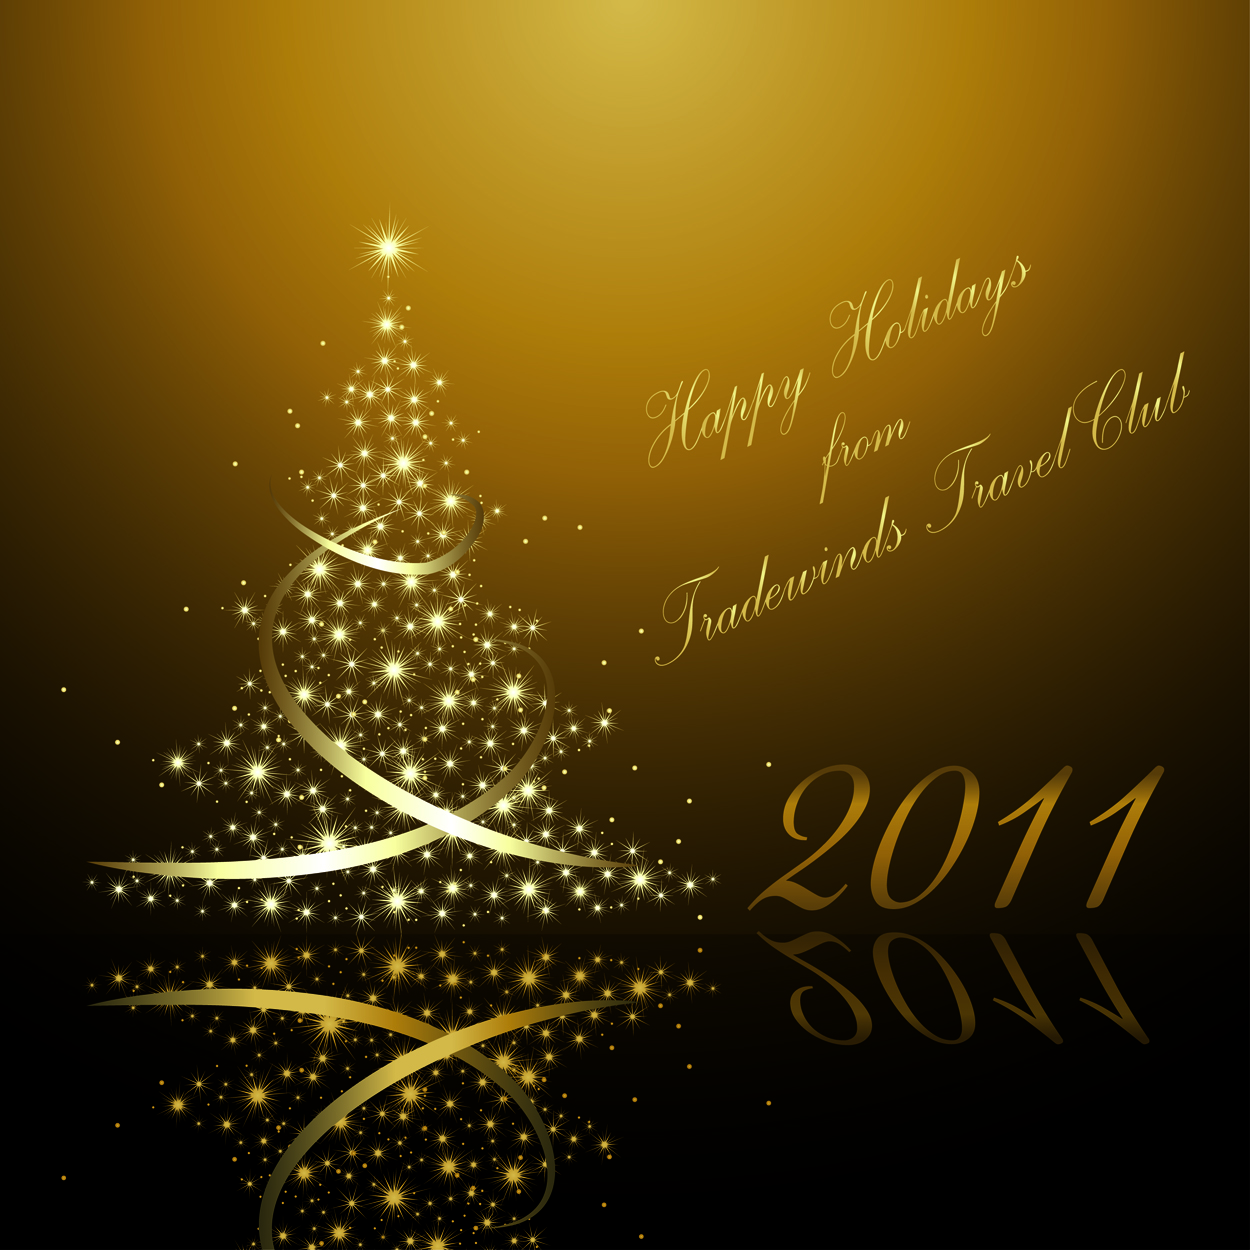 Tradewinds Travel Club Wishing You A Happy Holiday Season With Tips On Travel